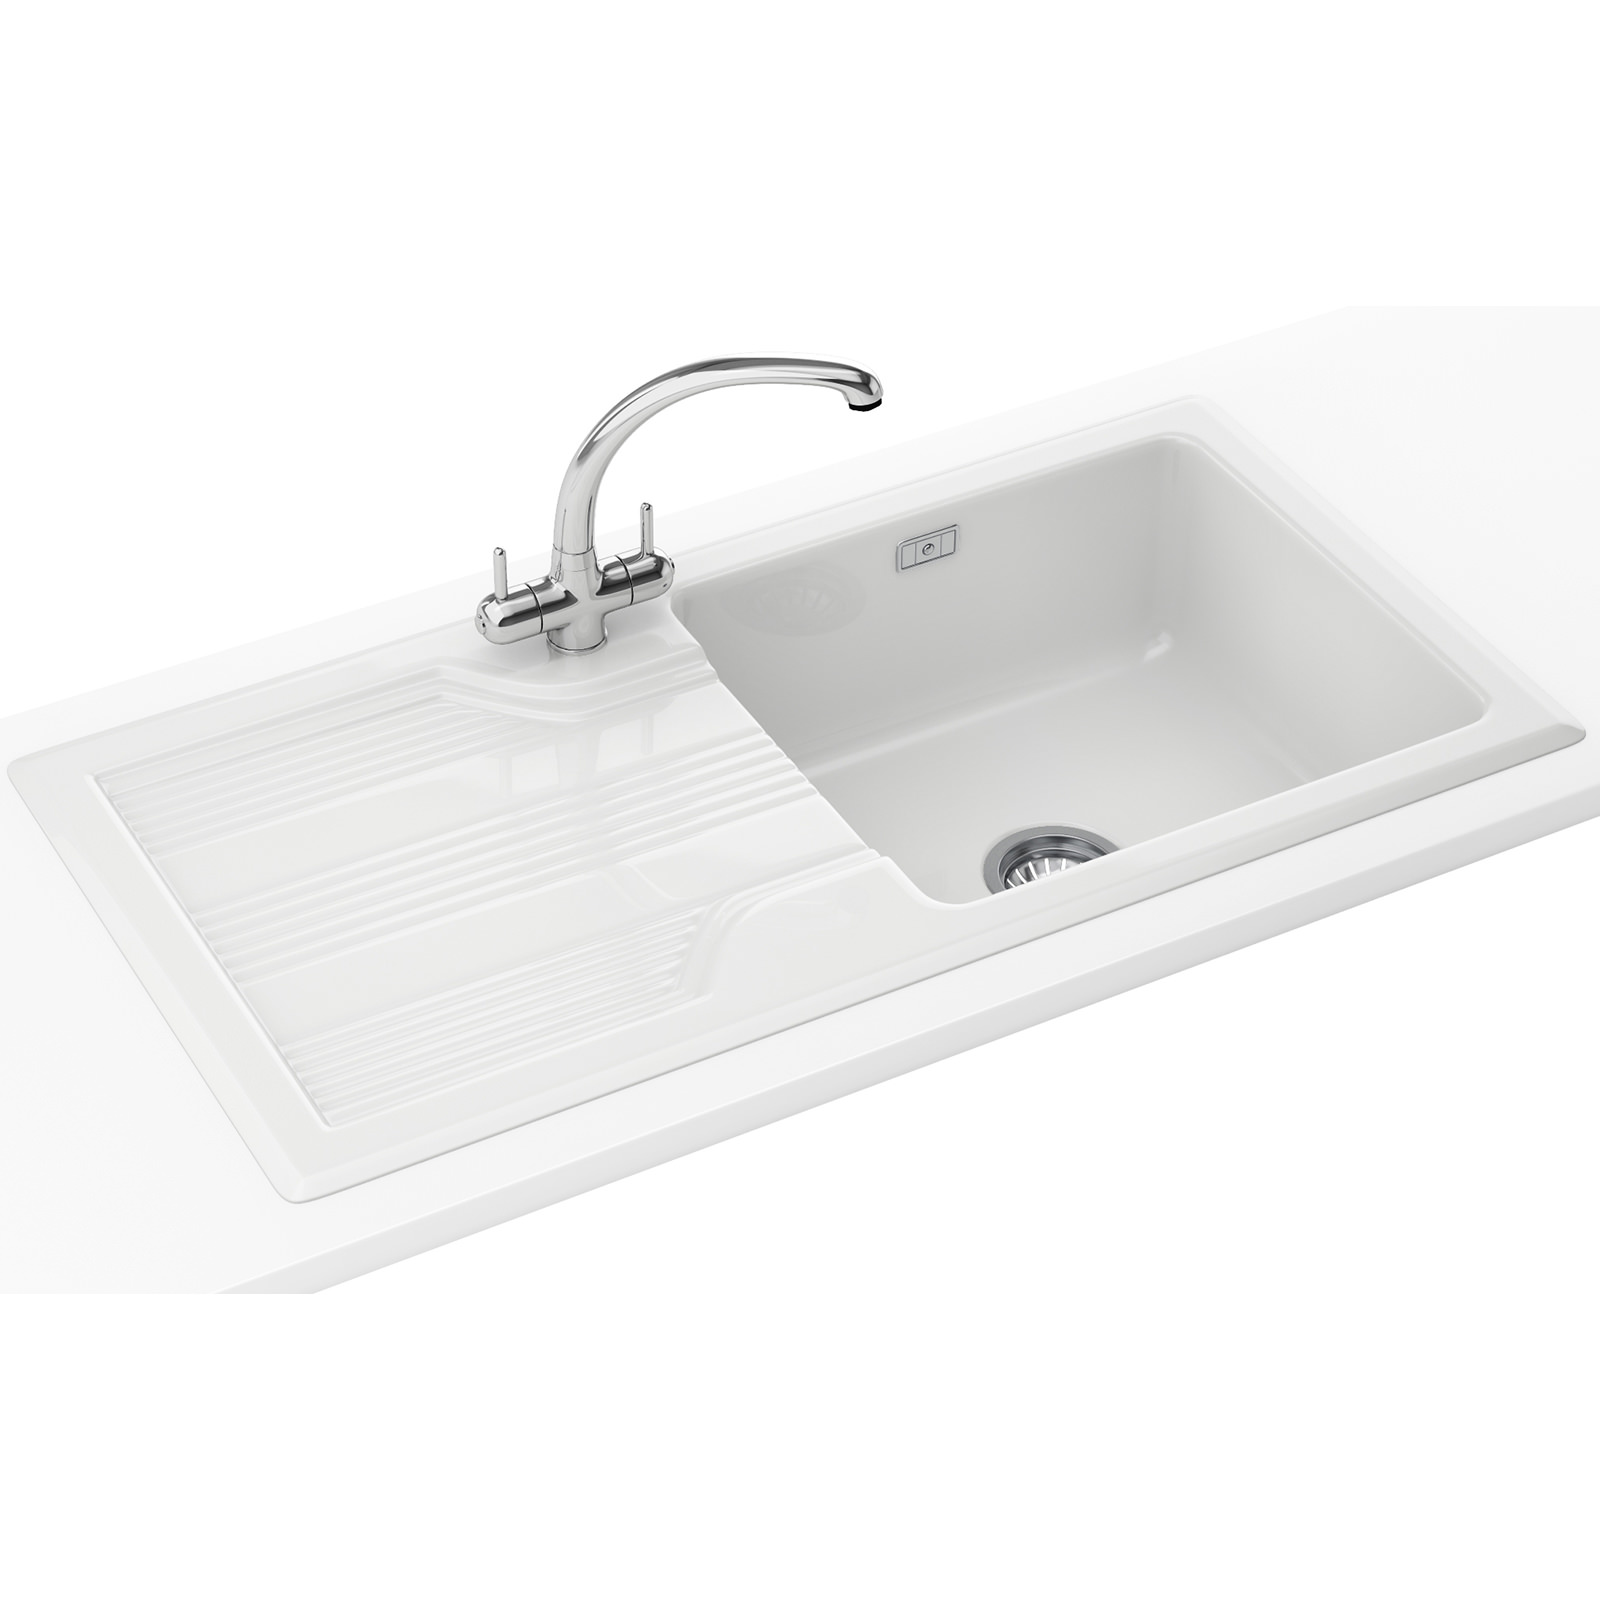 large ceramic kitchen sinks franke galassia propack gak 611 ceramic white inset sink 6784